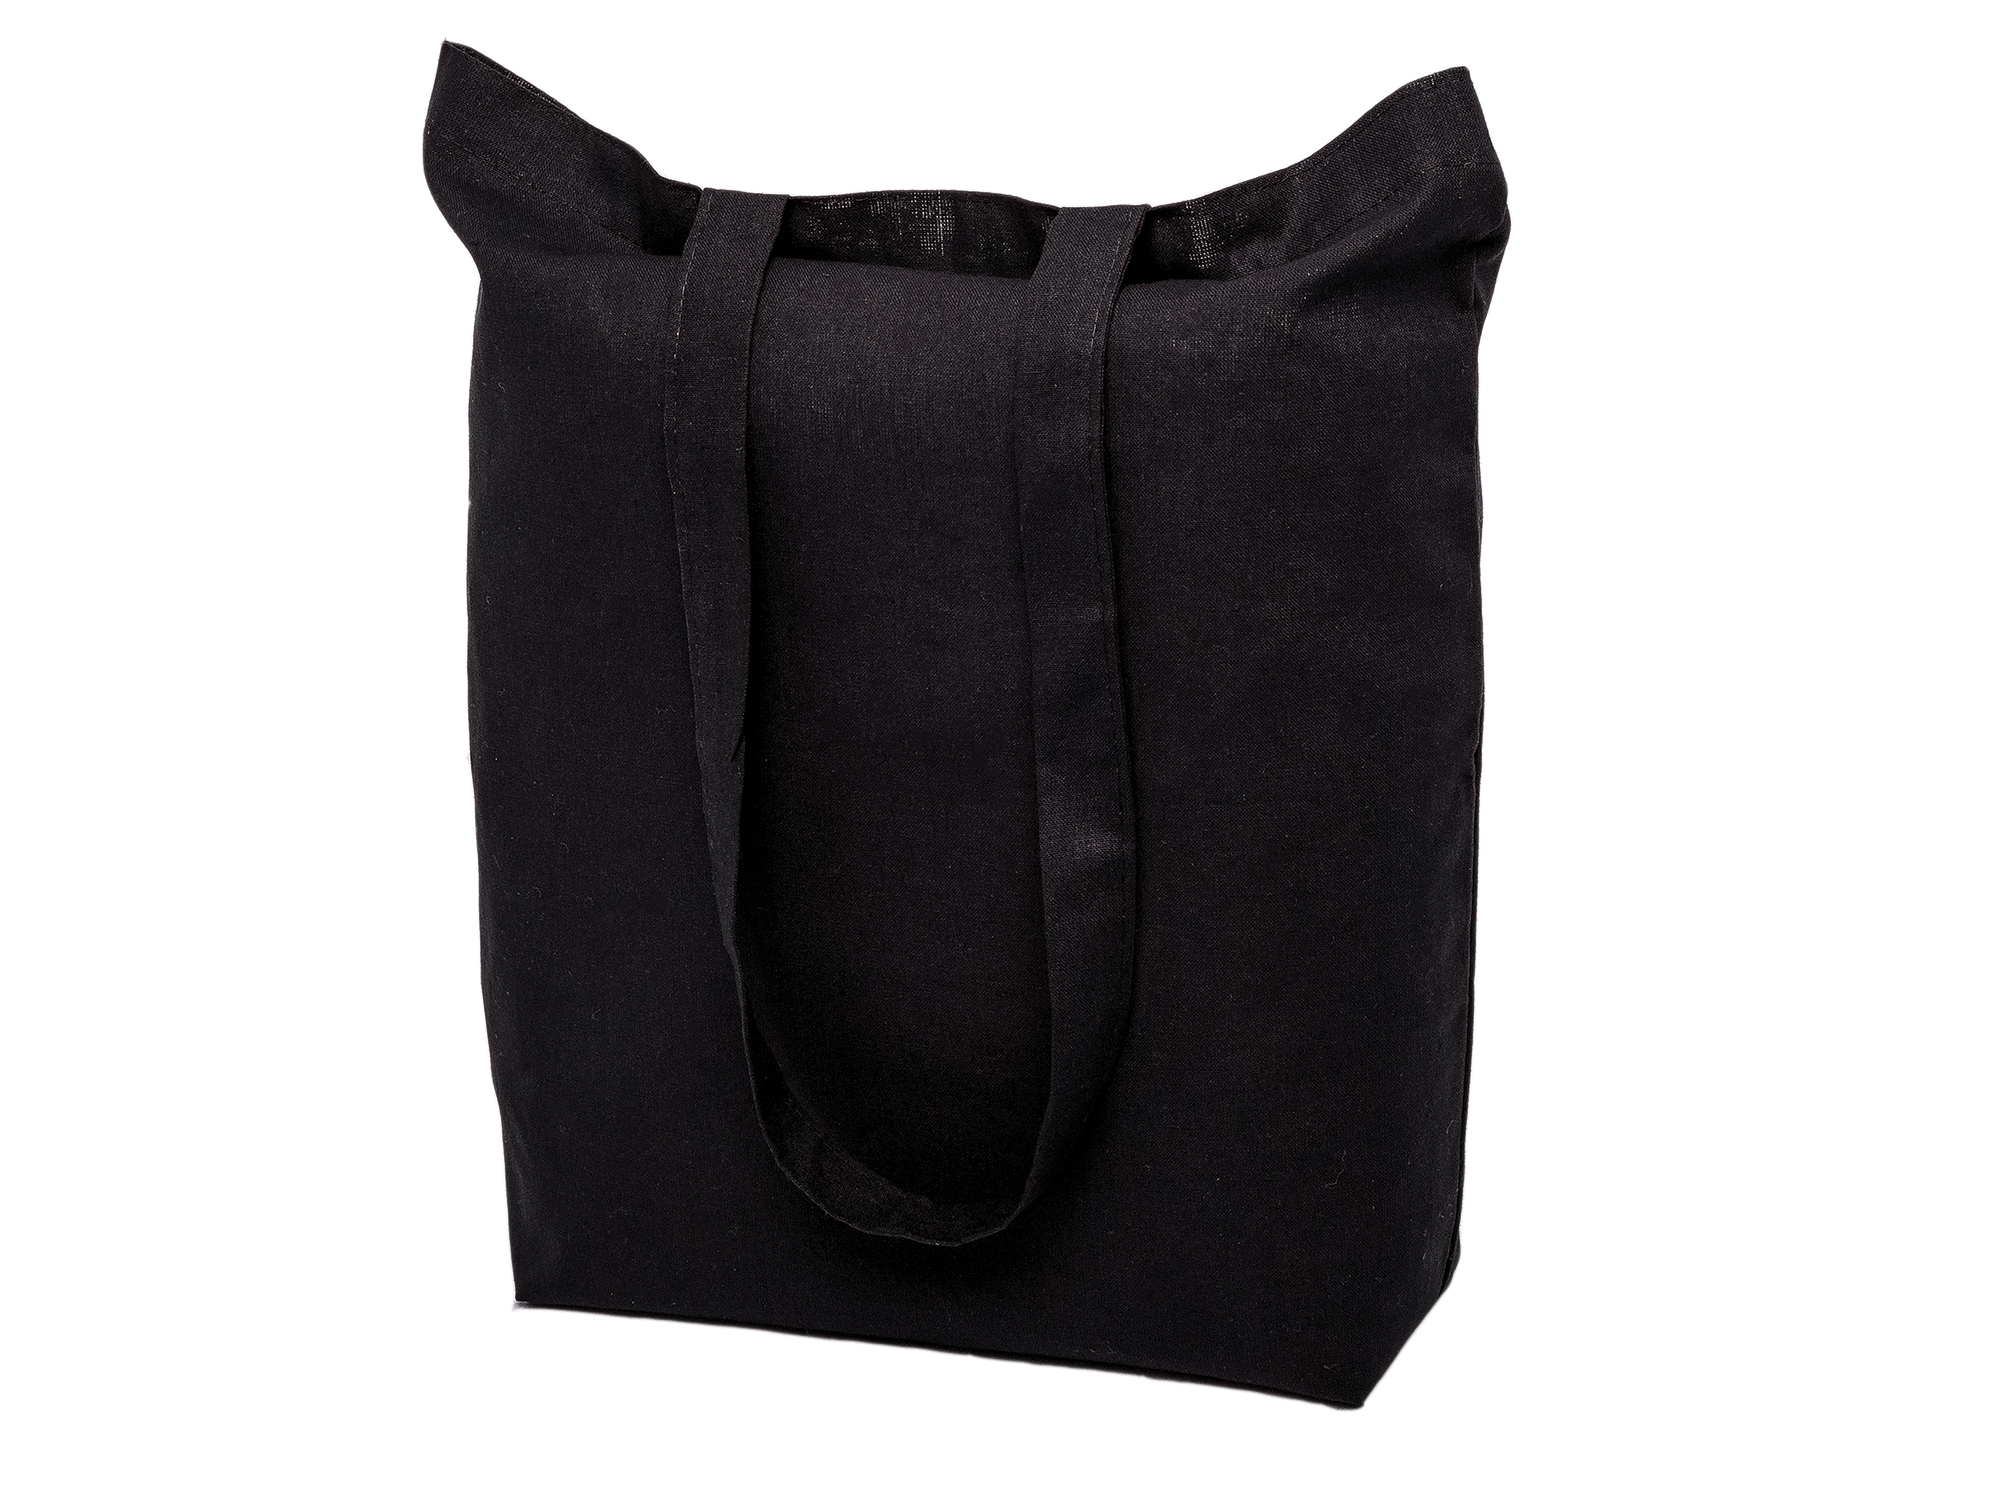 Item COTTON BAG long handle 38x42 BLACK